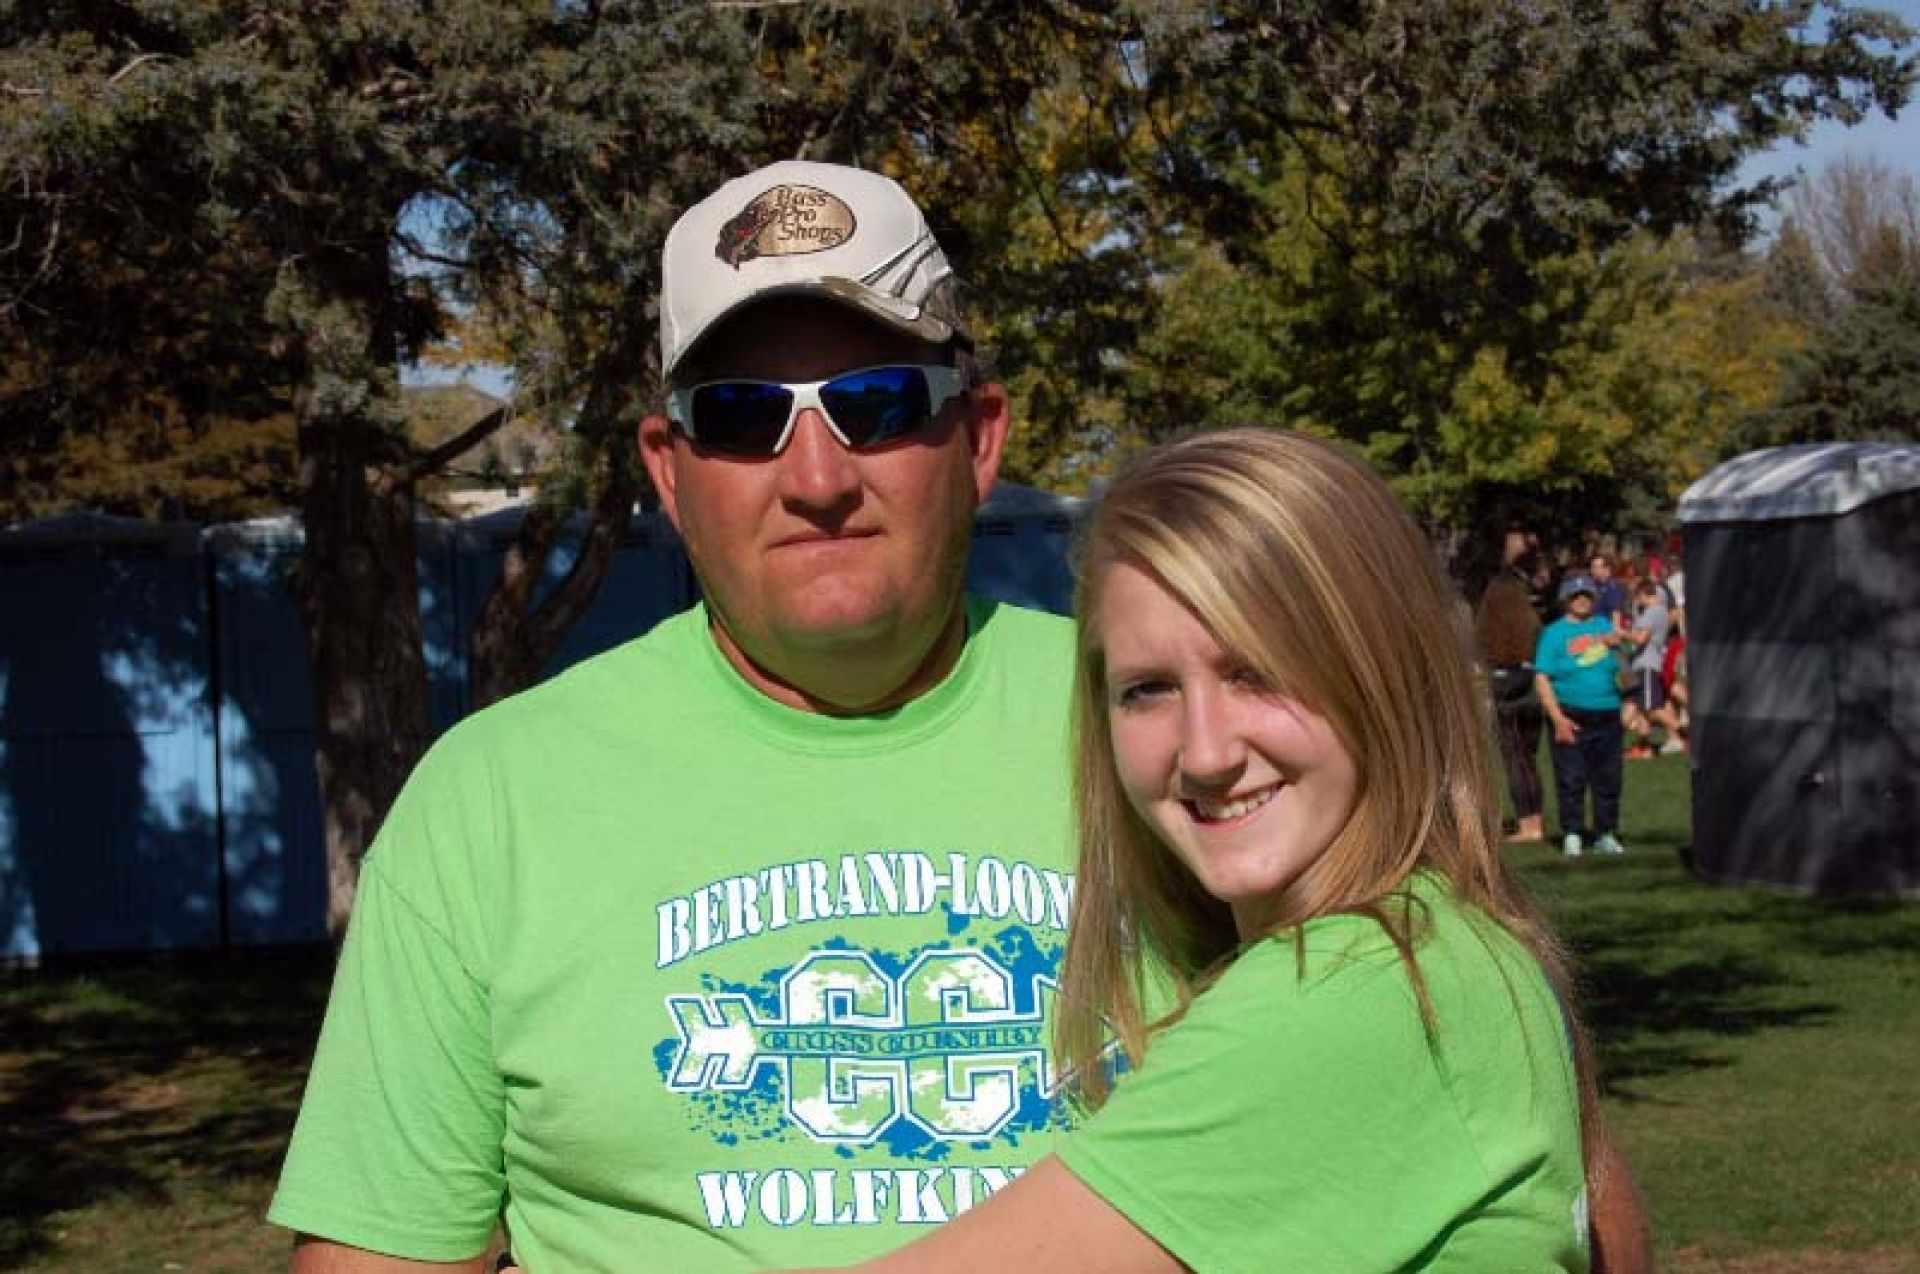 Joe Kennedy and his daughter Jordyn at the Cross Country Championships in Kearney, Neb.